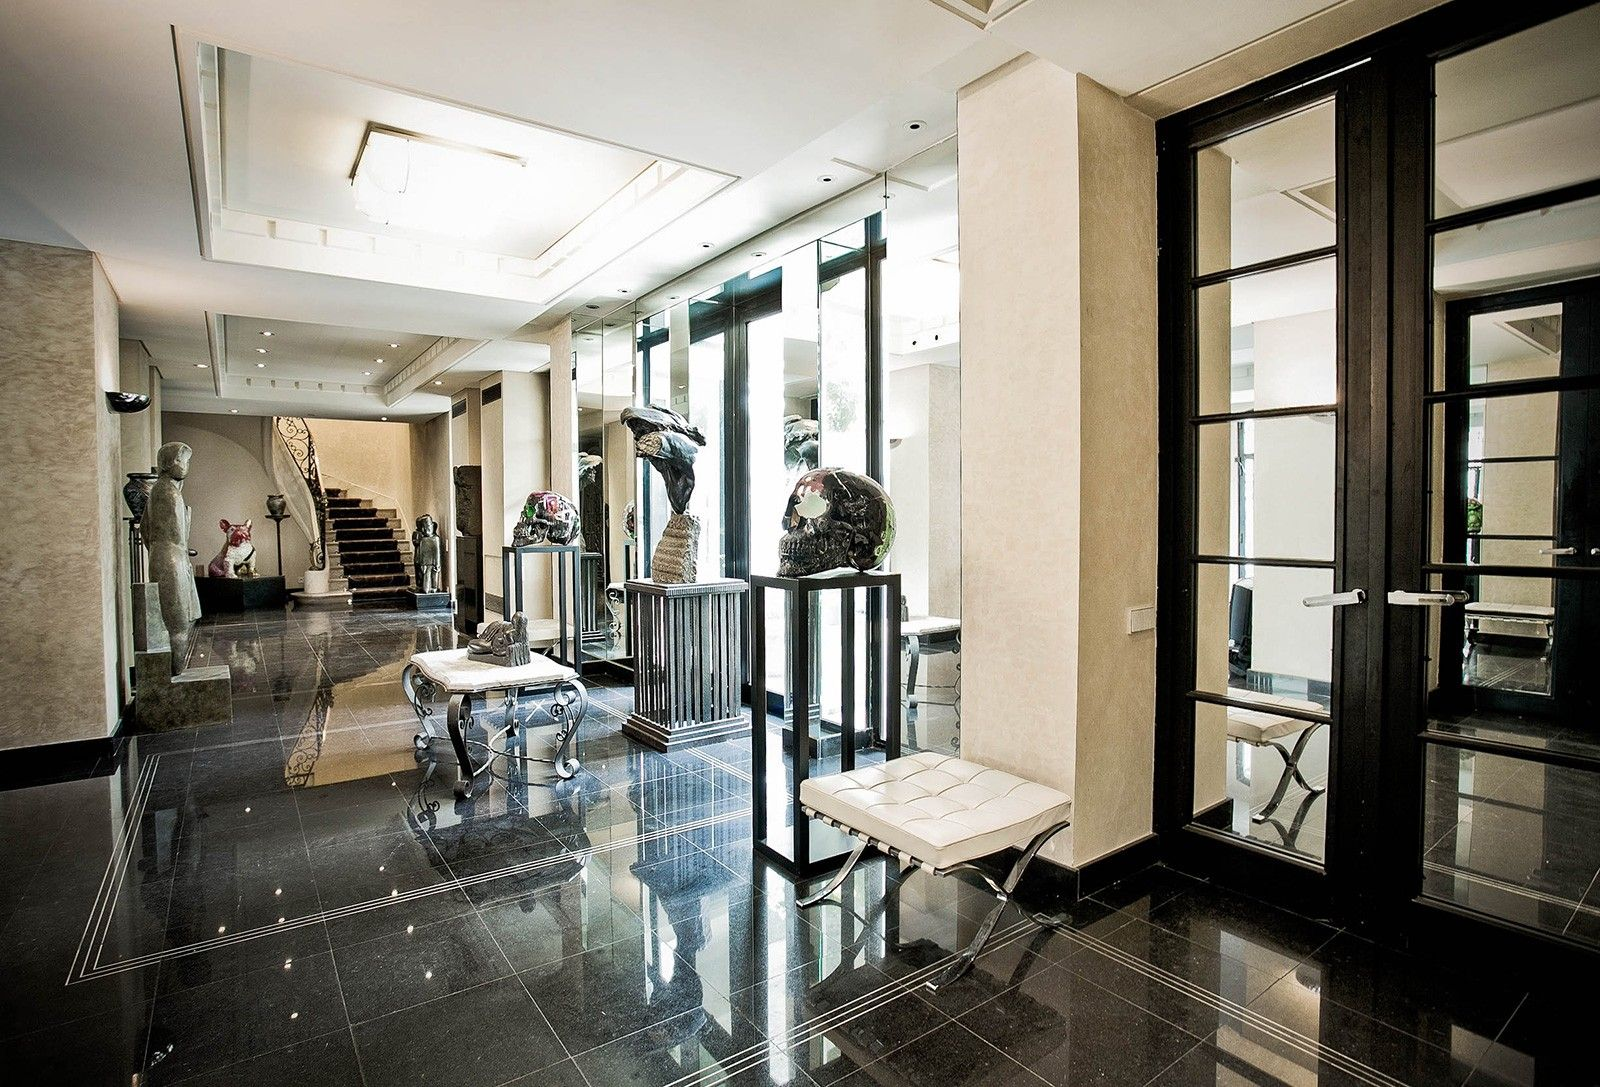 Awesome Art Deco Interior Design Ideas Inspirational References To Design  Your Awesome Home On Interior Browse Most Awesome Interior Design Gallery,  ...